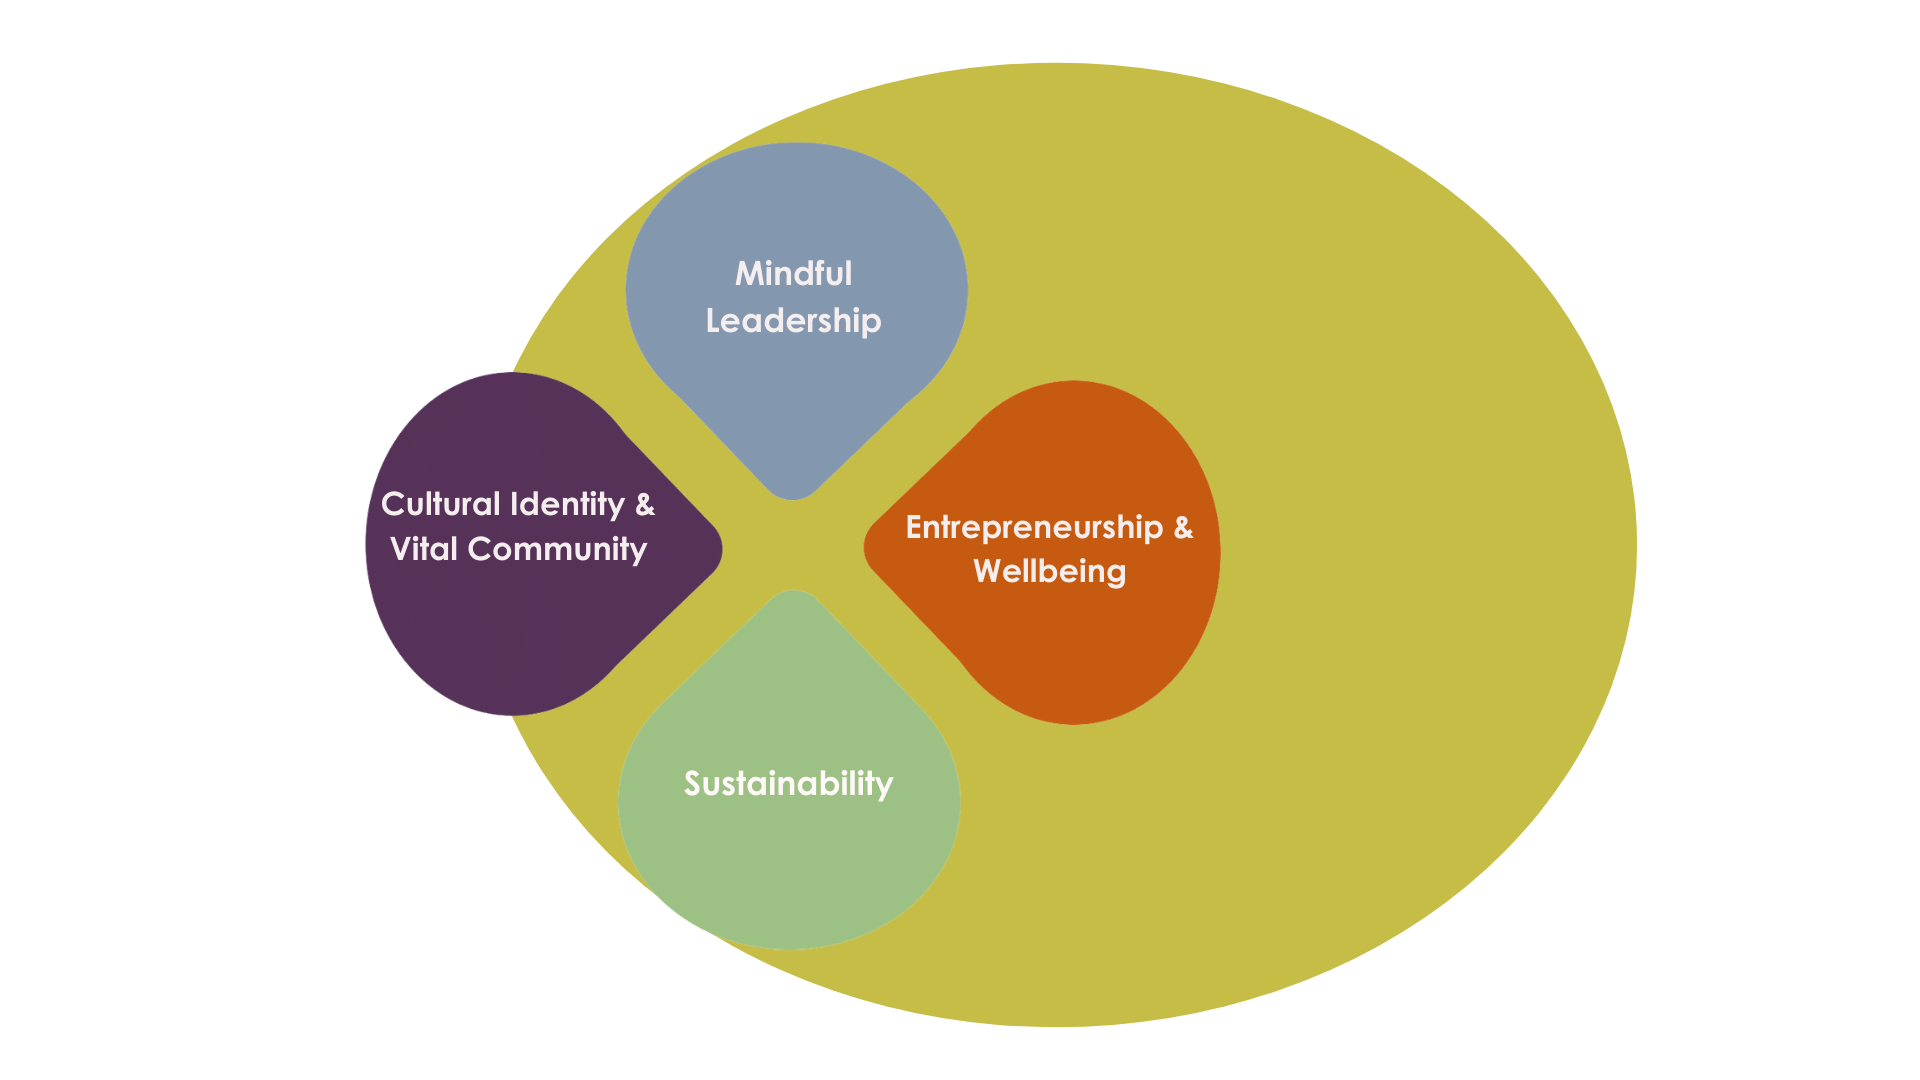 4 central values determin my values compass 1. Mindful Leadership 2. Entrepreneurship & Wellbeing 3. Sustainability 4. Vital Community